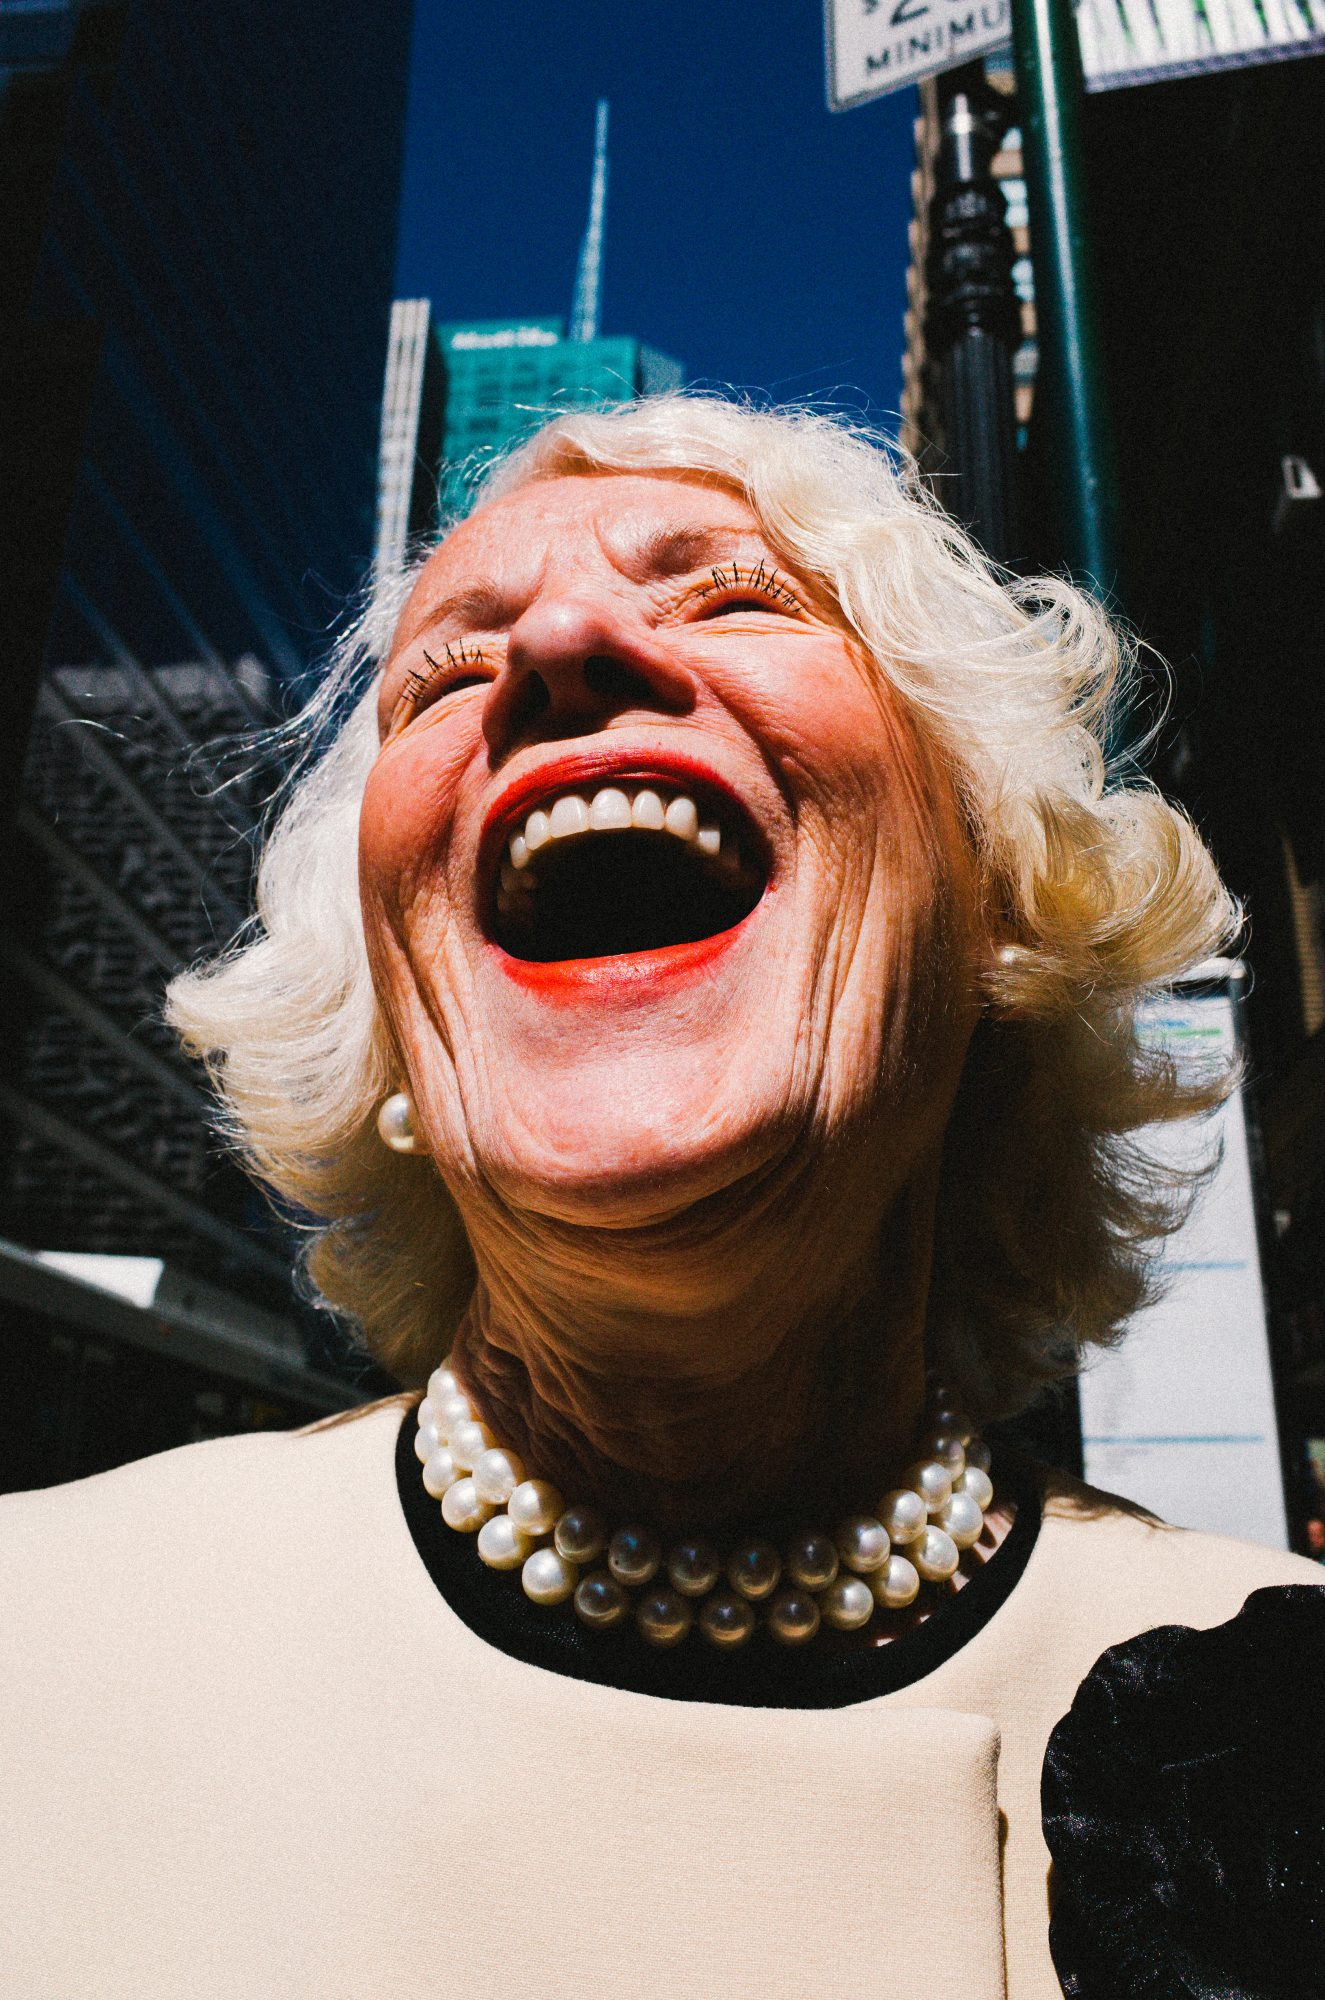 eric-kim-street-photography-street-portraits-1-laughing-lady-nyc